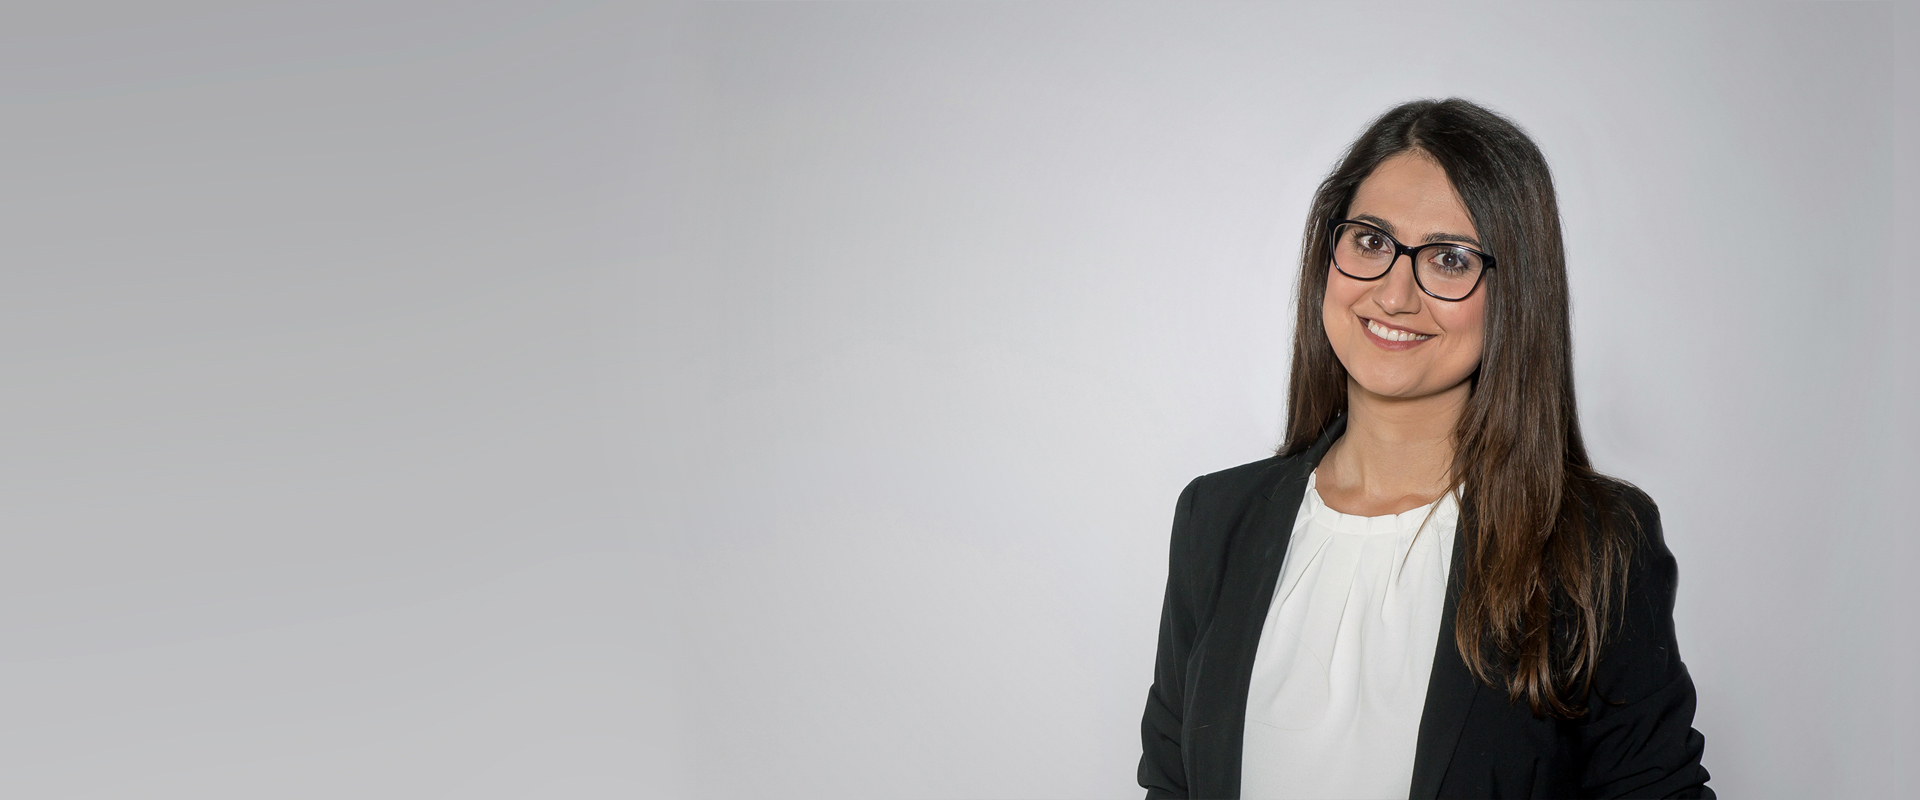 Maria L. Pérez Vergara is the new Managing Director of MC-Bauchemie in Belgium